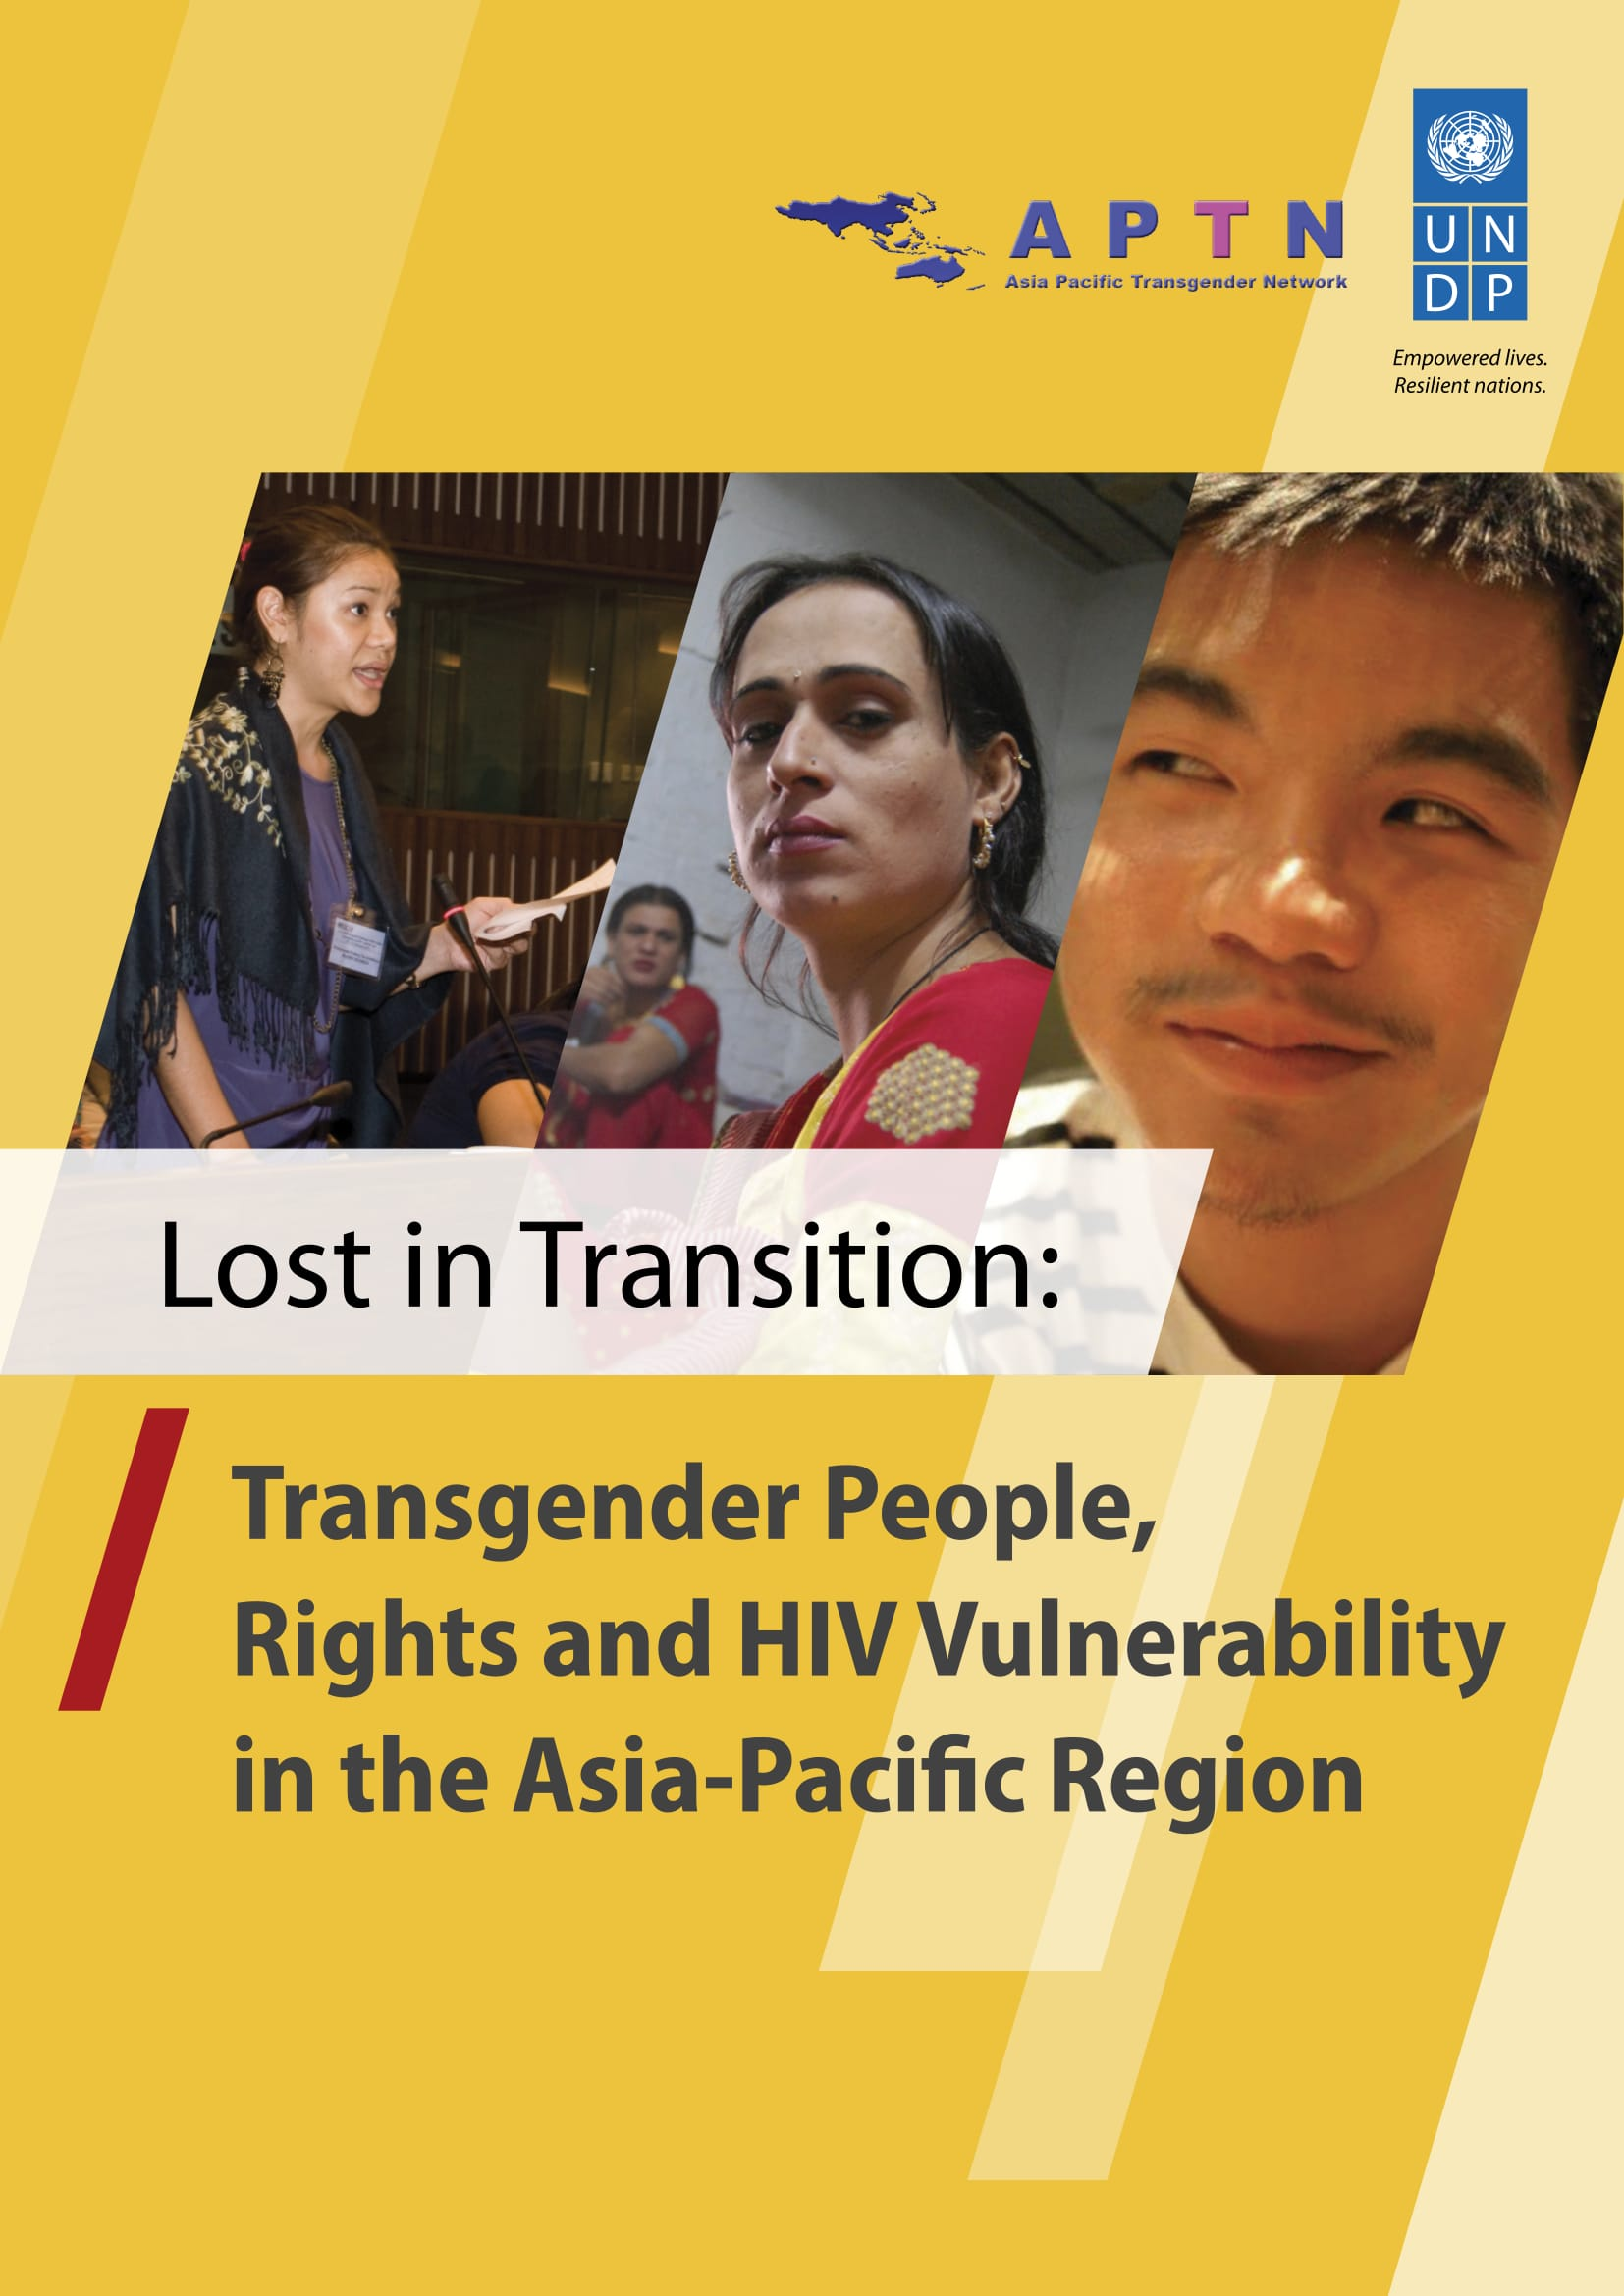 Lost in Transition: Transgender People, Rights and HIV Vulnerability in the Asia-Pacific Region